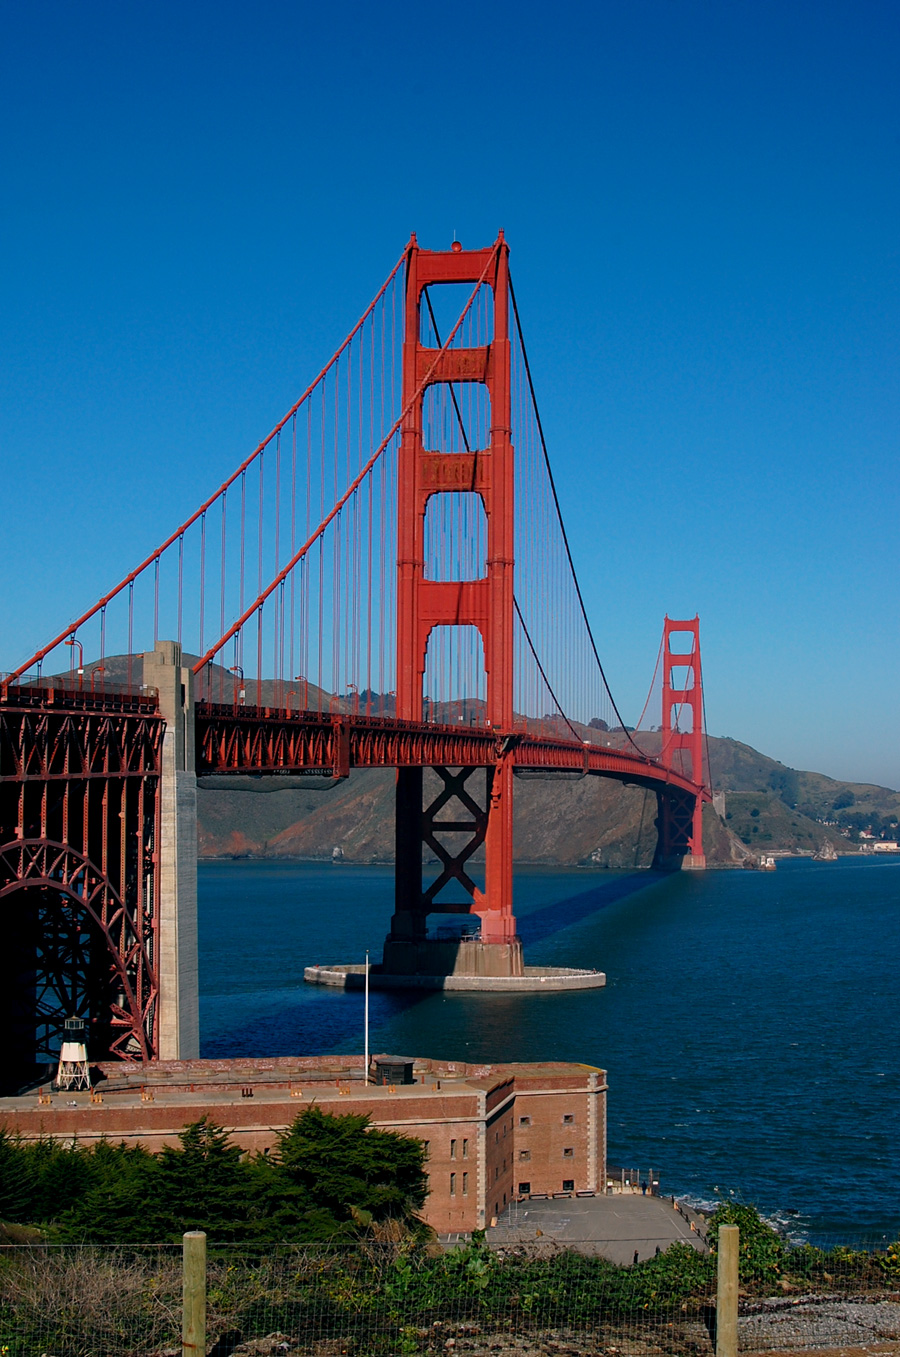 I will never tire of seeing the Golden Gate Bridge